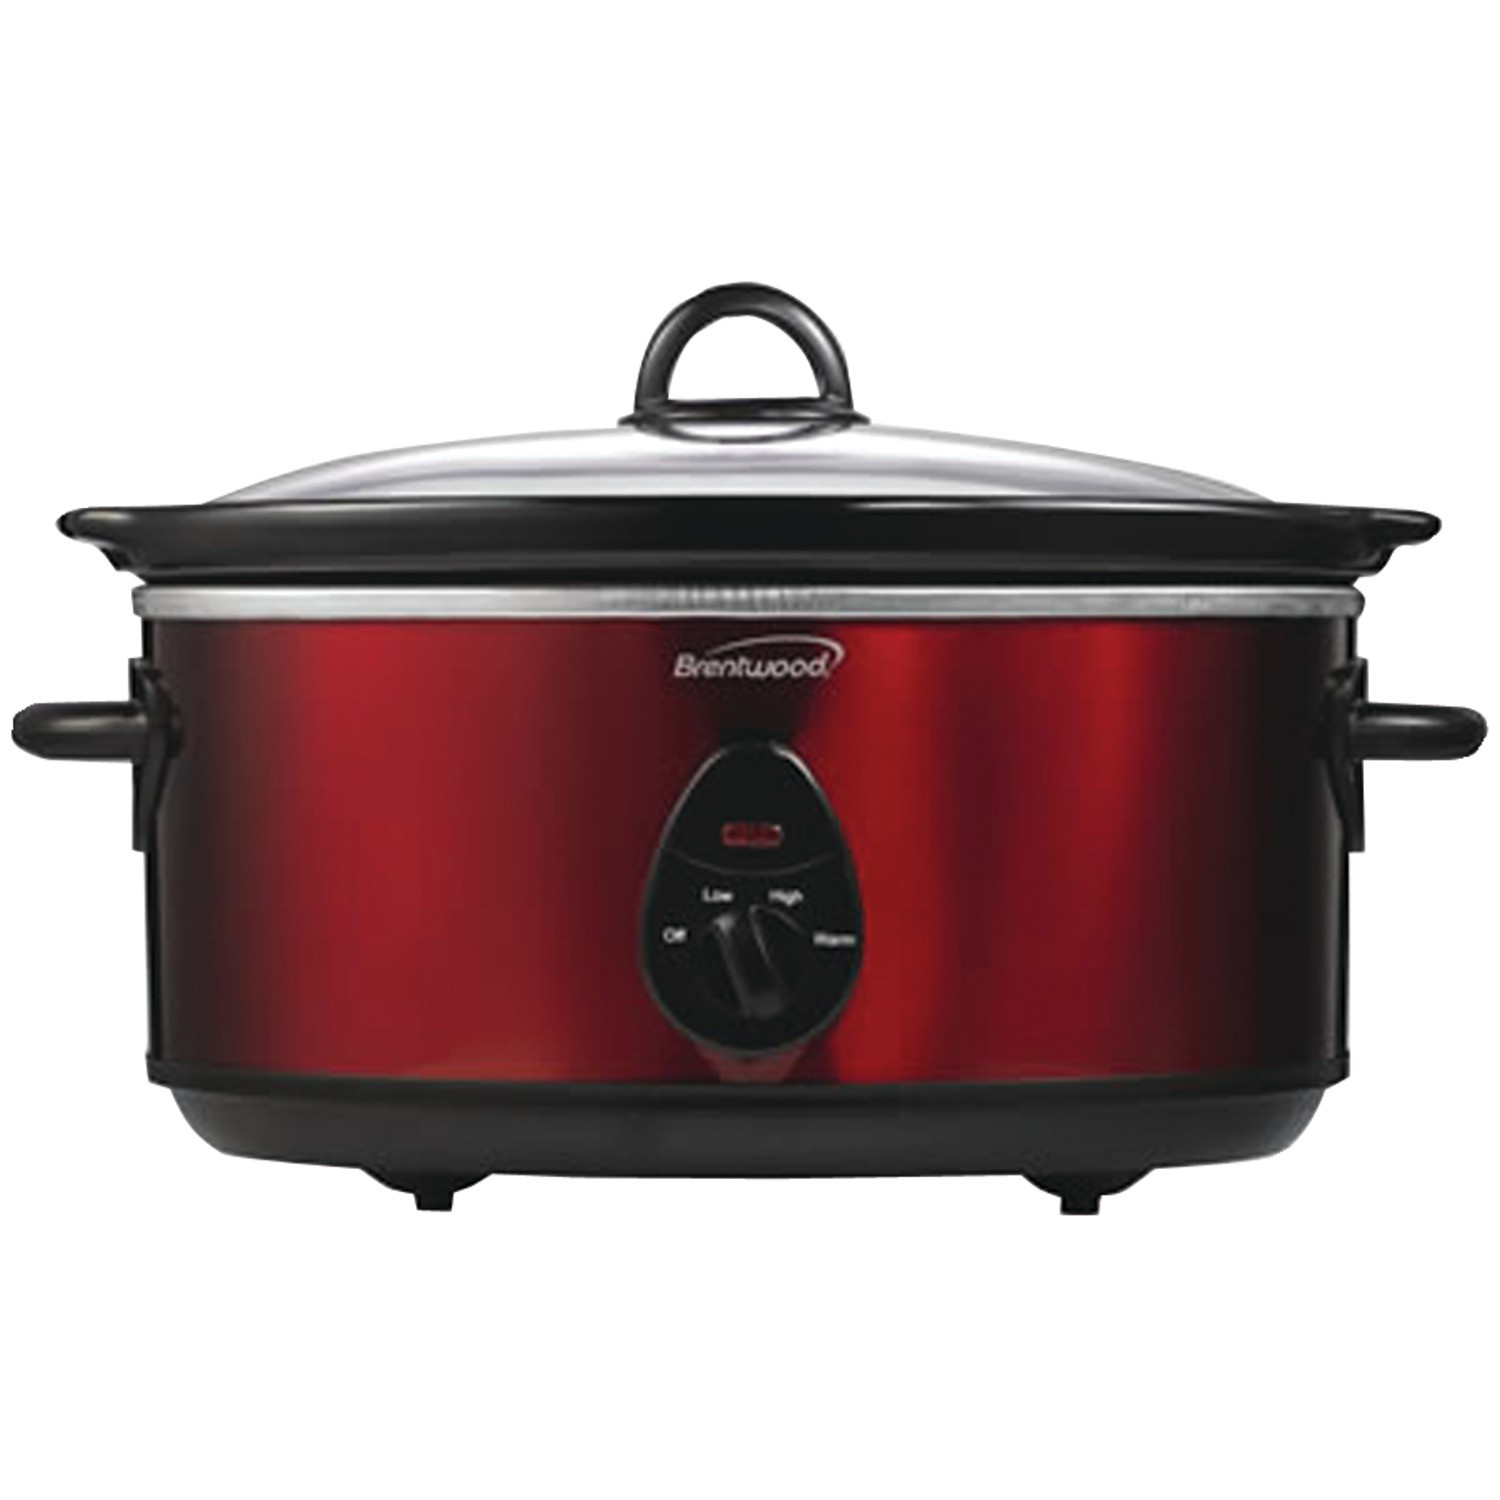 6.5 Quart Slow Cooker in Red